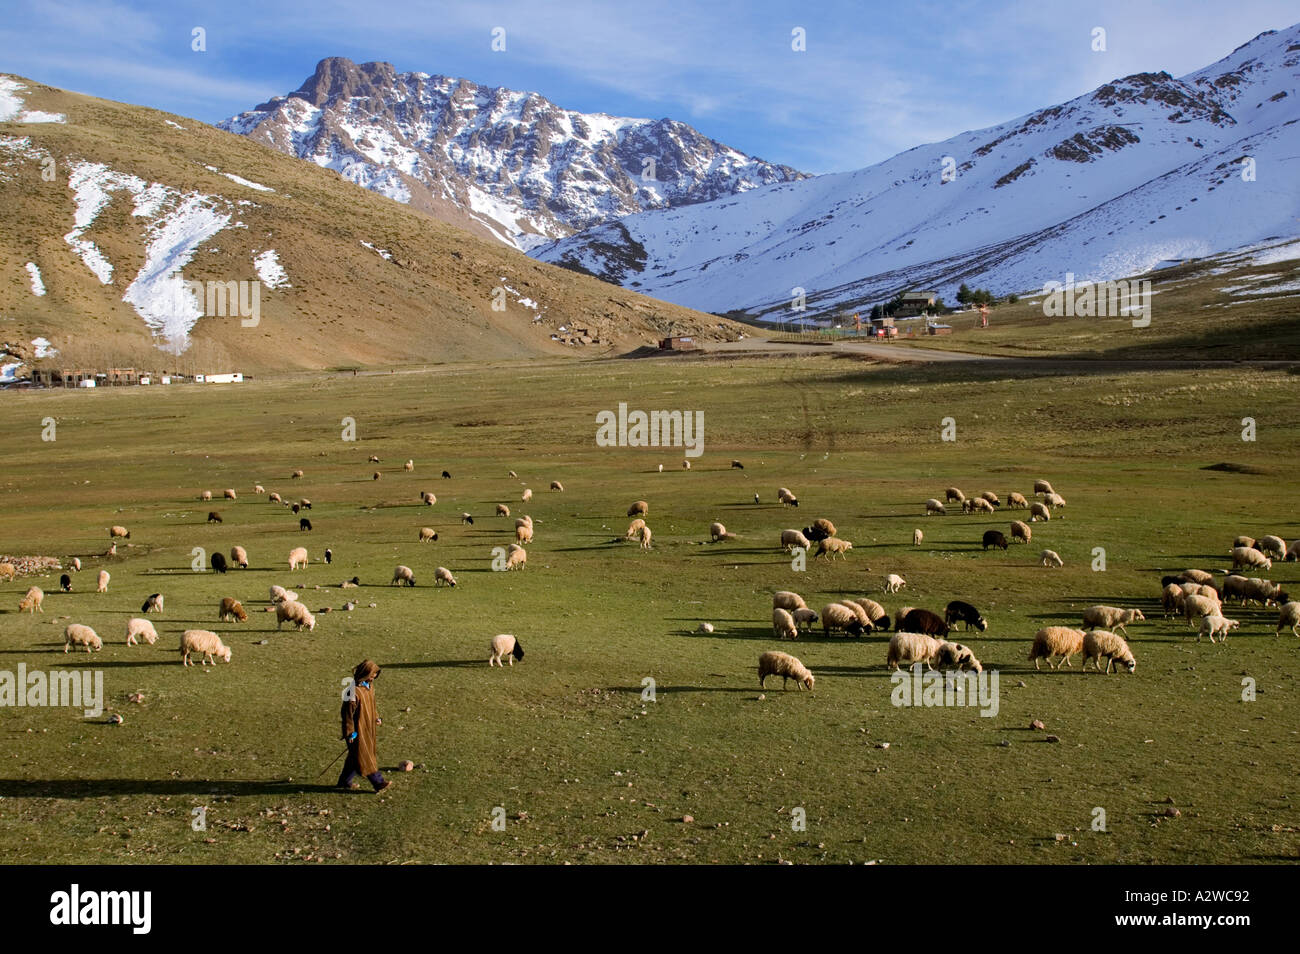 Farming A Shepard and his sheep in the High atlas region of Oukaimeden Altitude is above 3000 meters Morocco - Stock Image